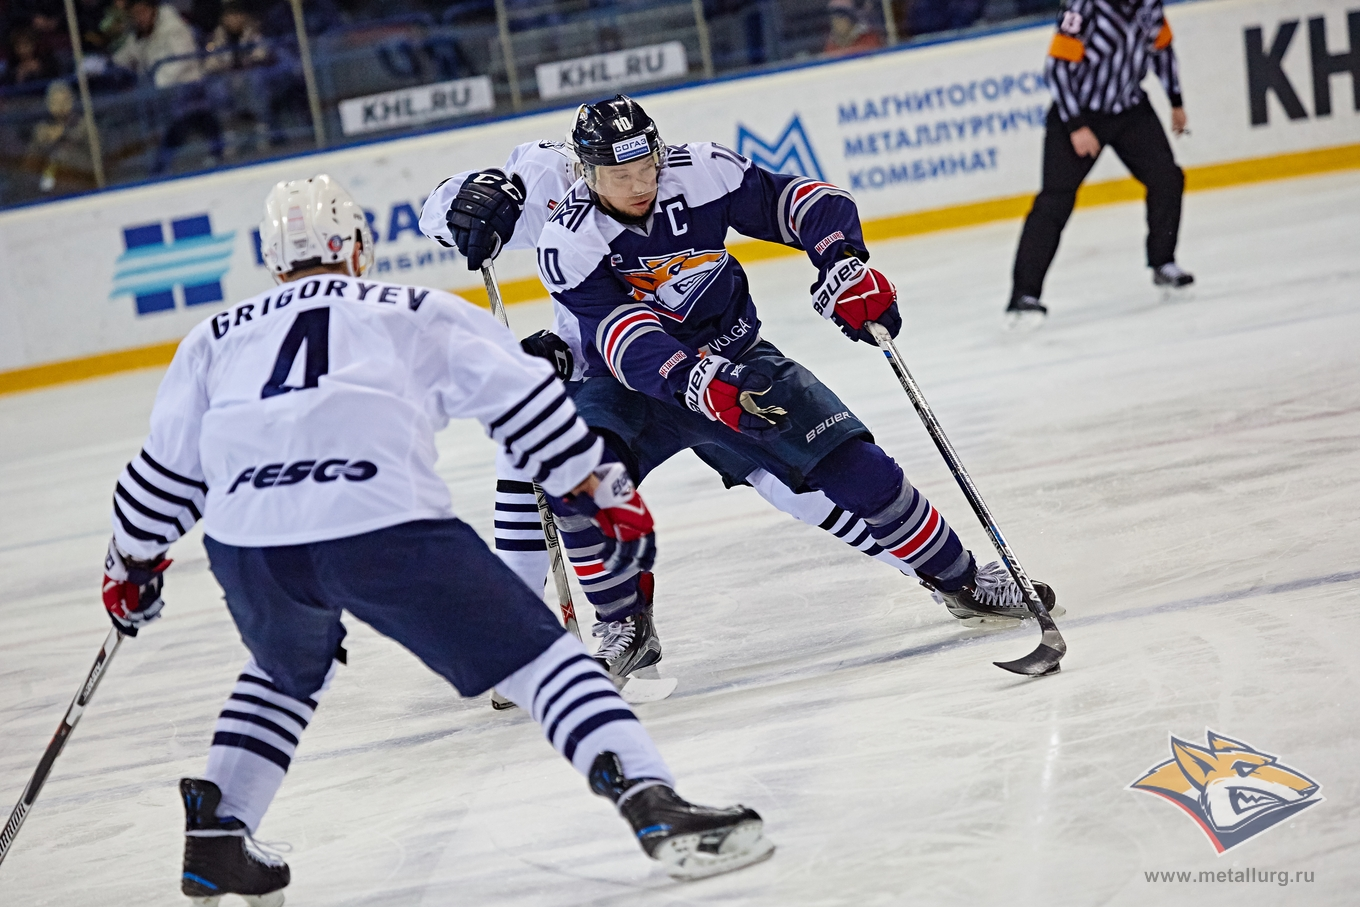 KHL: Sergei Mozyakin Vs. The Record Books